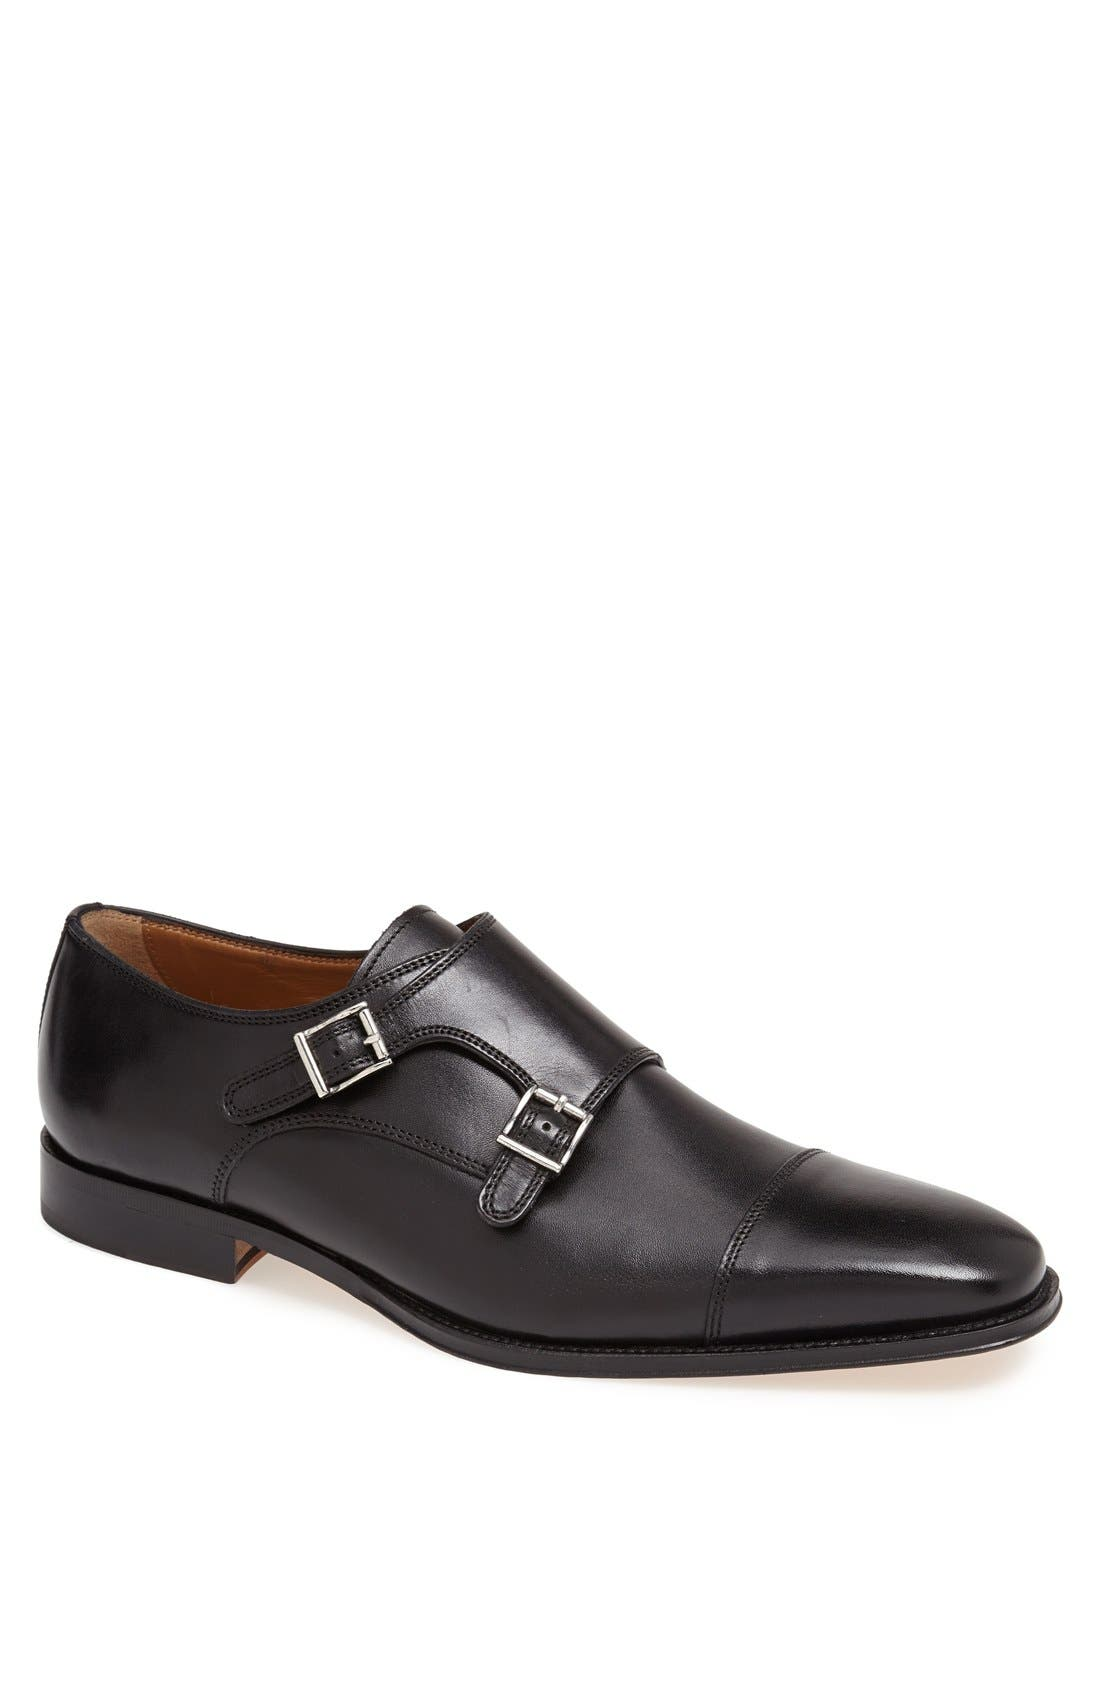 'Classico' Double Monk Strap Slip-On,                         Main,                         color, BLACK